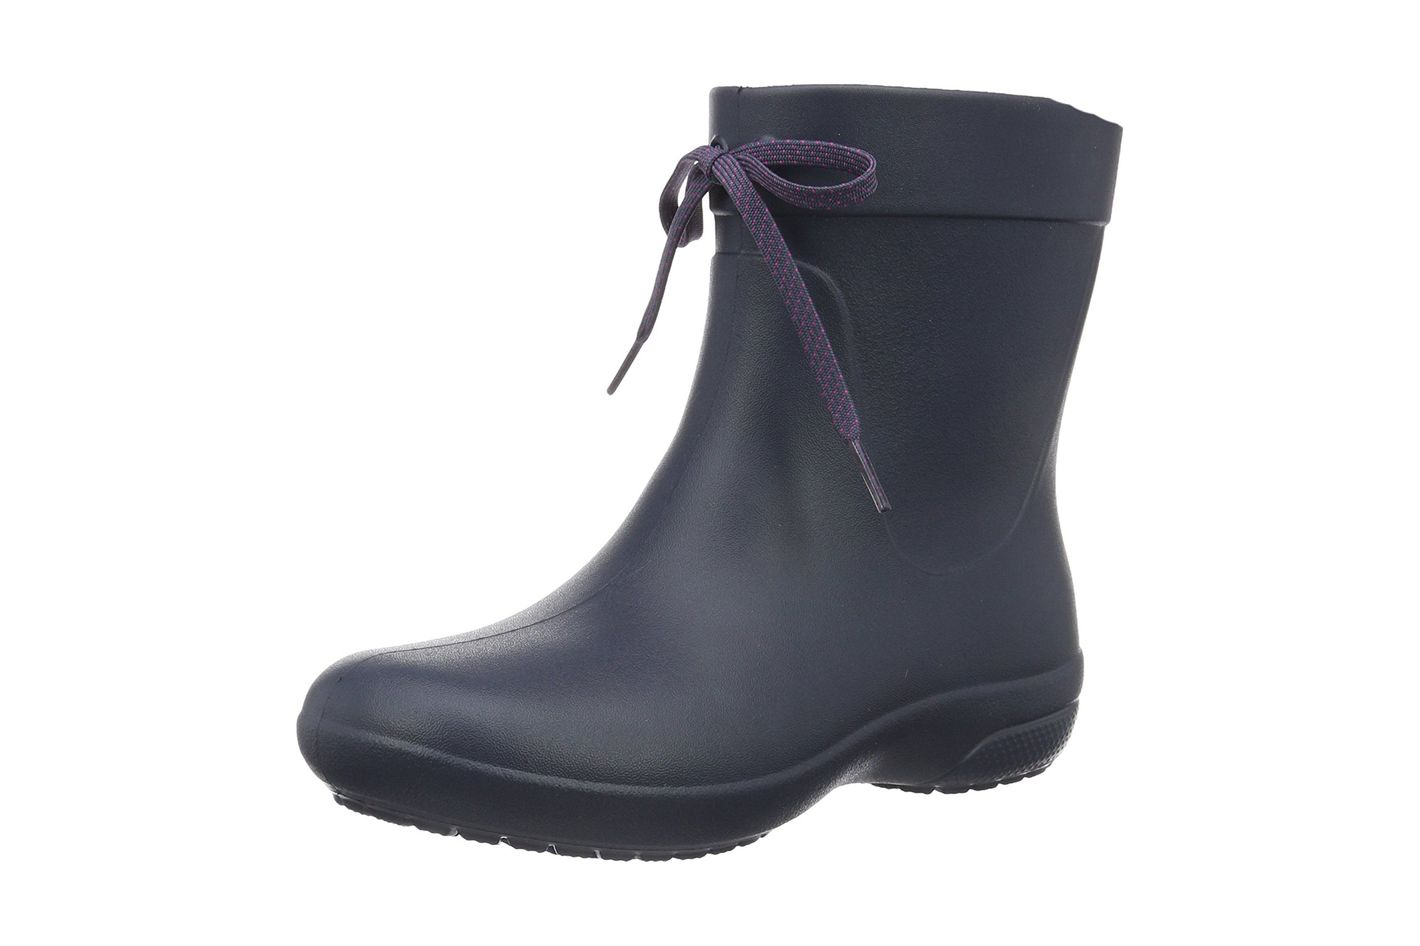 really comforter boots spring rain articles yes do exist most walking they comfortable the for